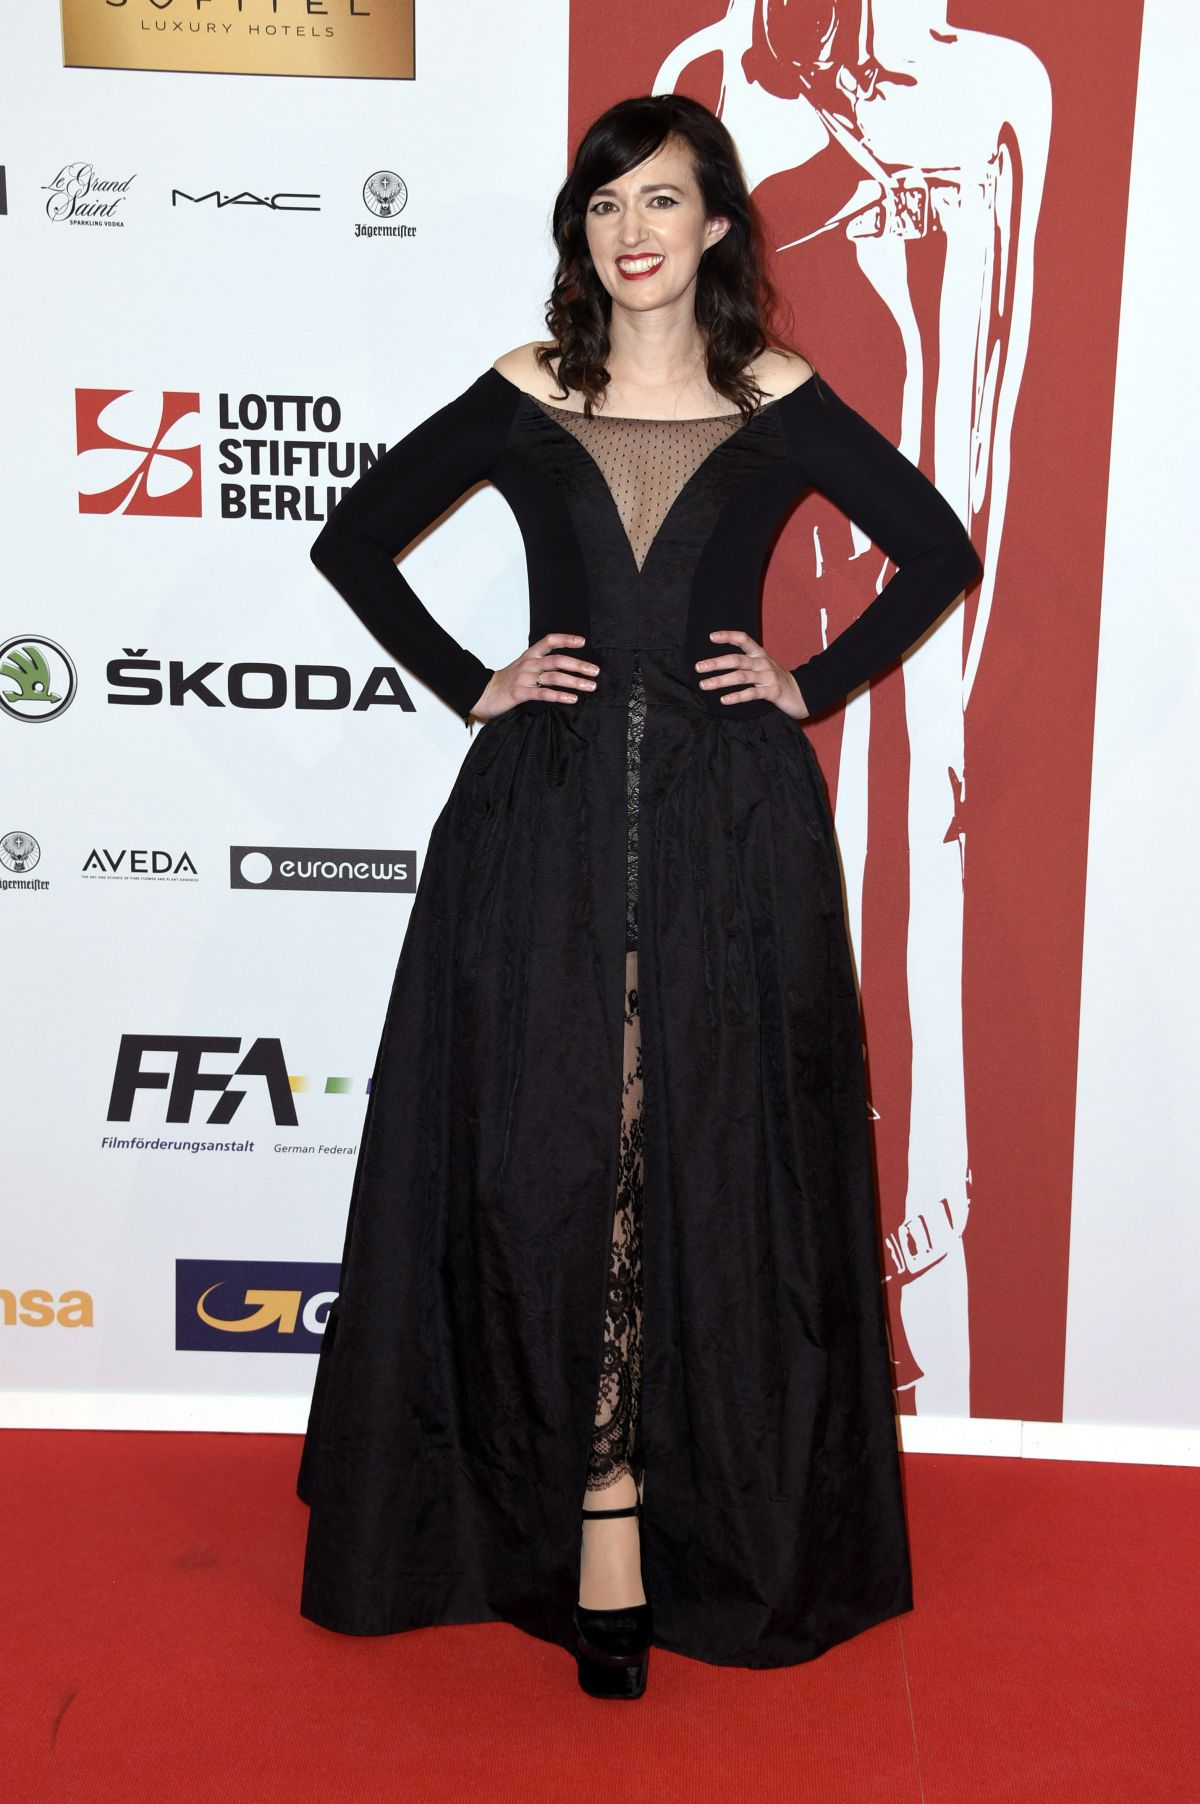 RACHEL ZEFFIRA at 28th Annual European Film Awards in Berlin 12/12/2015